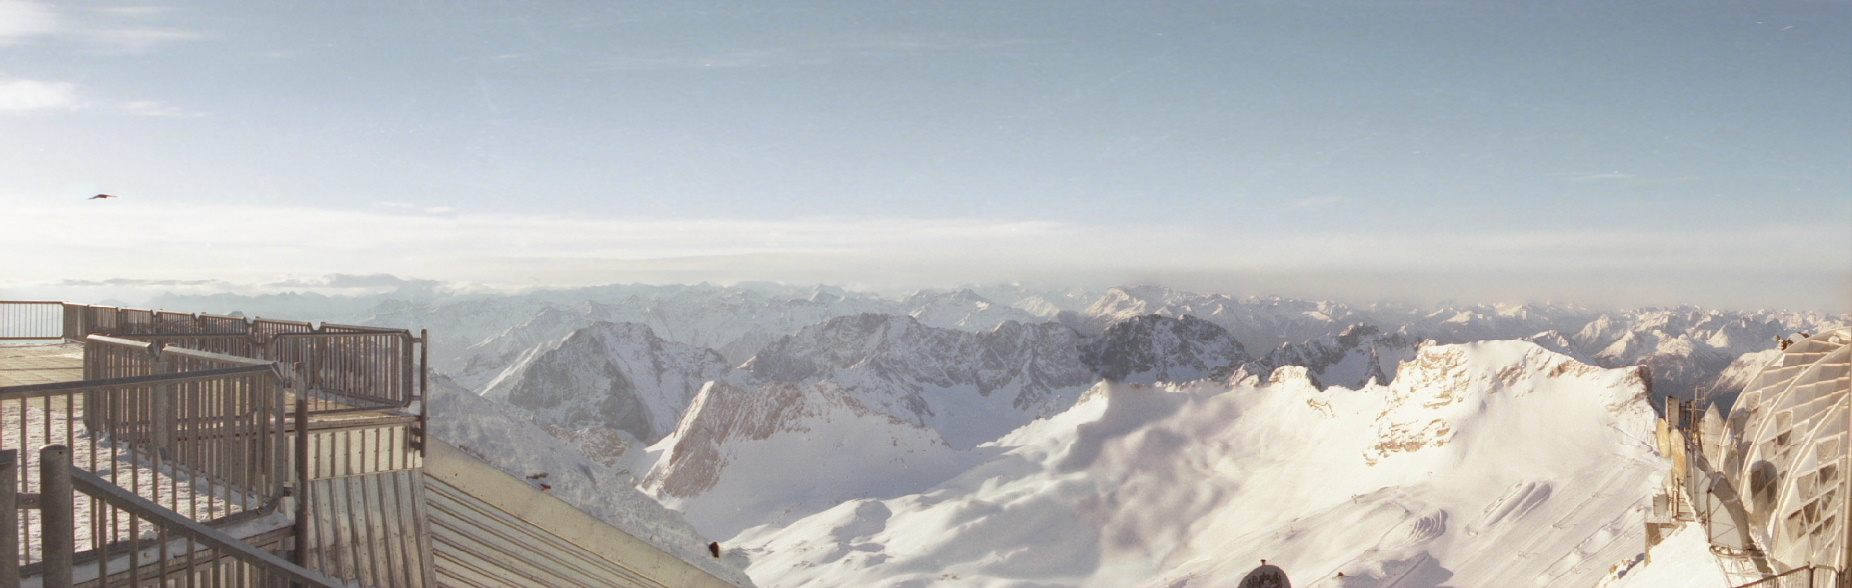 Looking towards Austria, Switzerland, and Italy from Zugspitz, the highest point in Germany